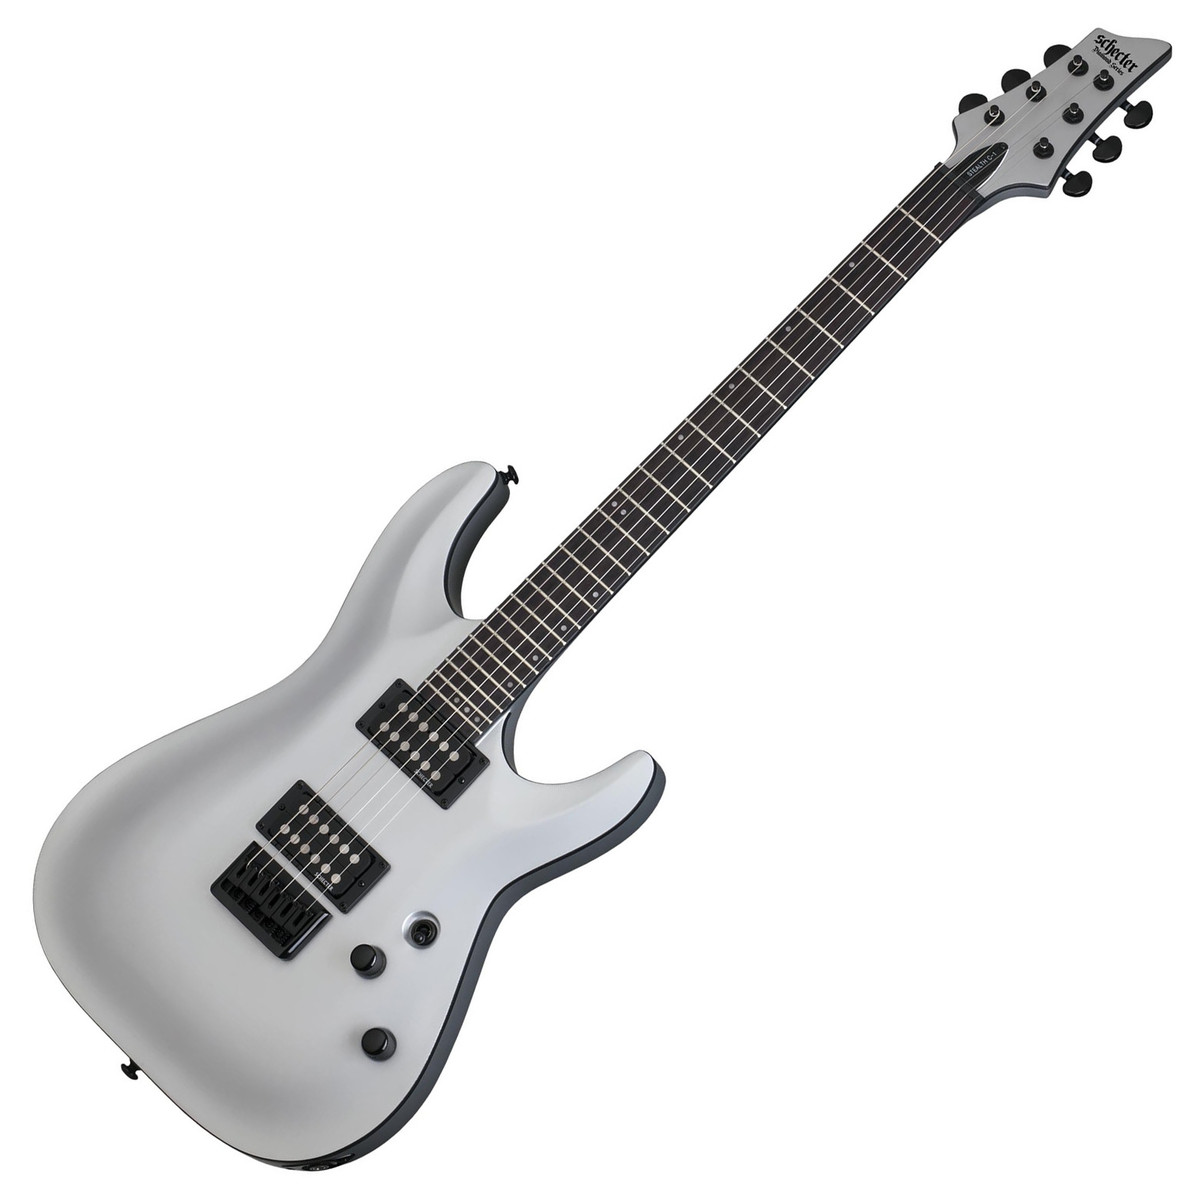 schecter stealth c 1 electric guitar satin silver at gear4music. Black Bedroom Furniture Sets. Home Design Ideas